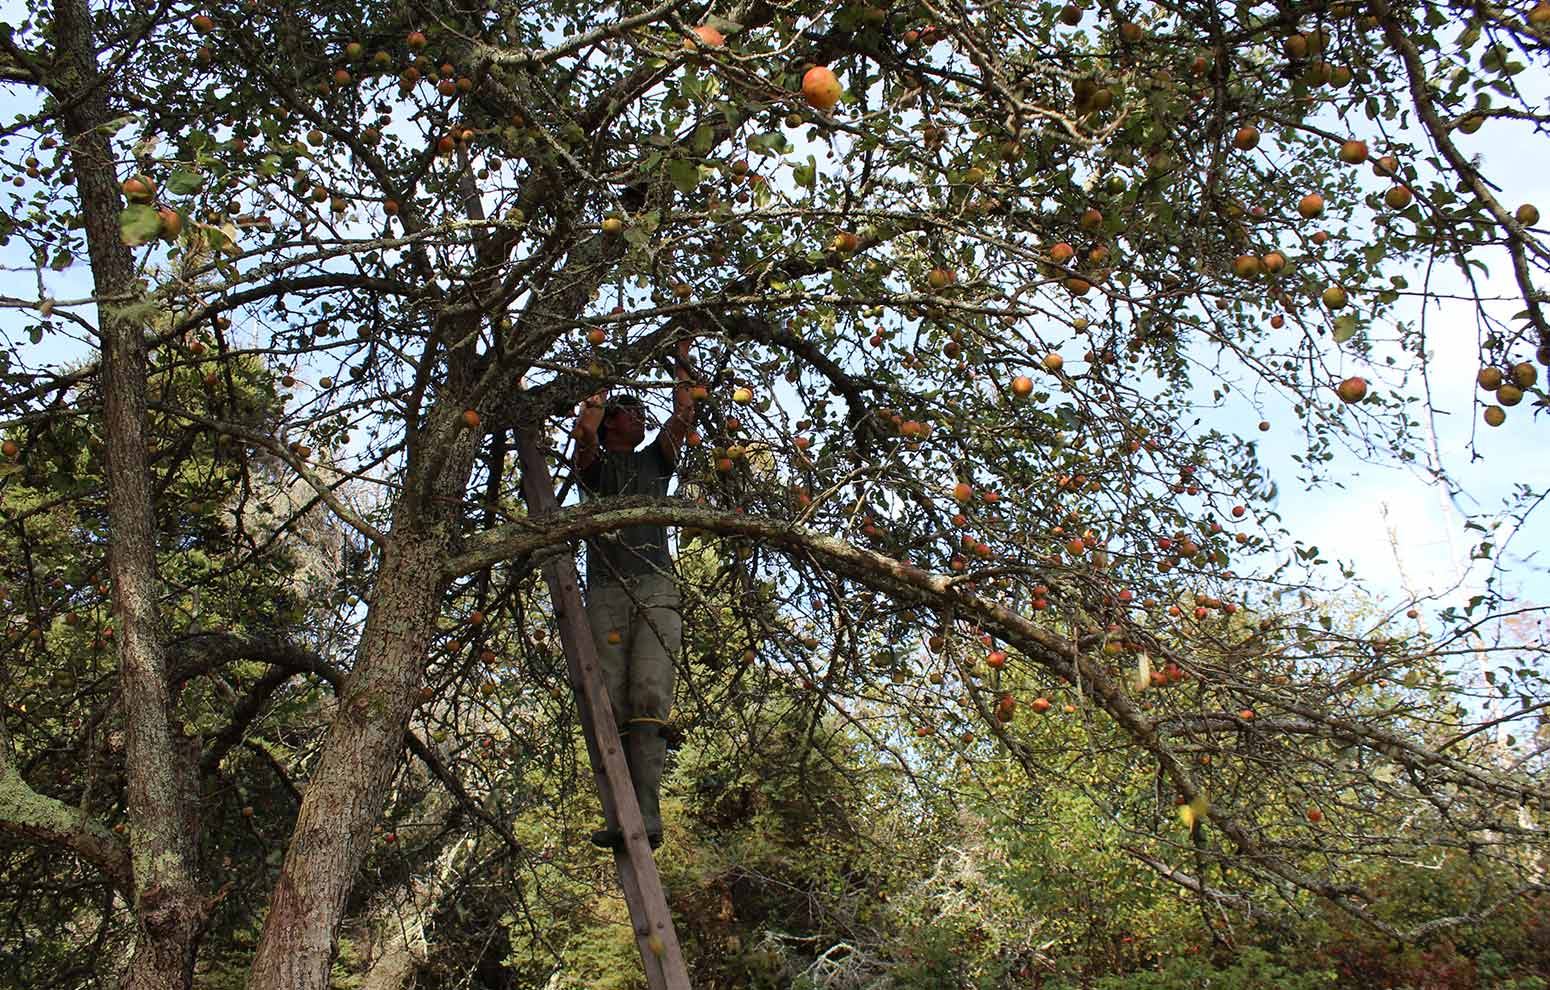 Wooden apple ladder in old apple tree during harvest of wild apples